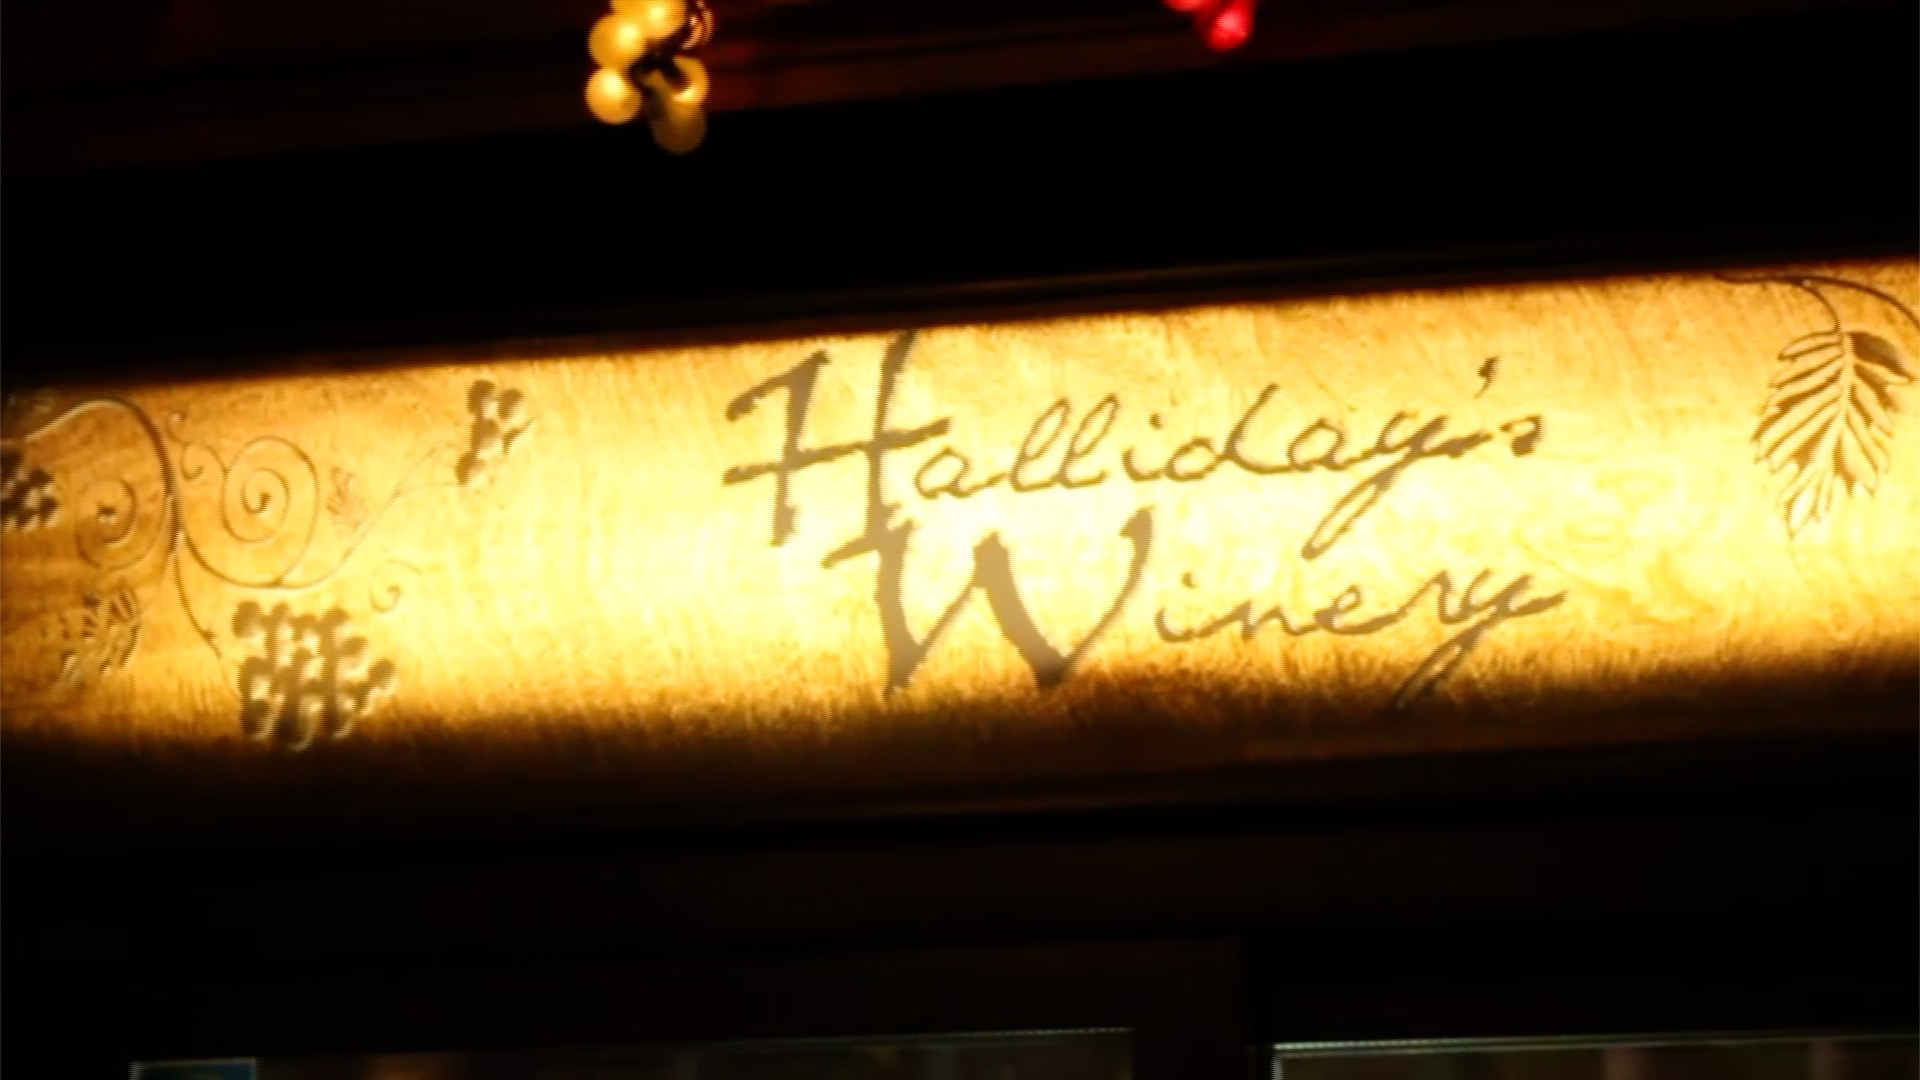 Halliday's Winery